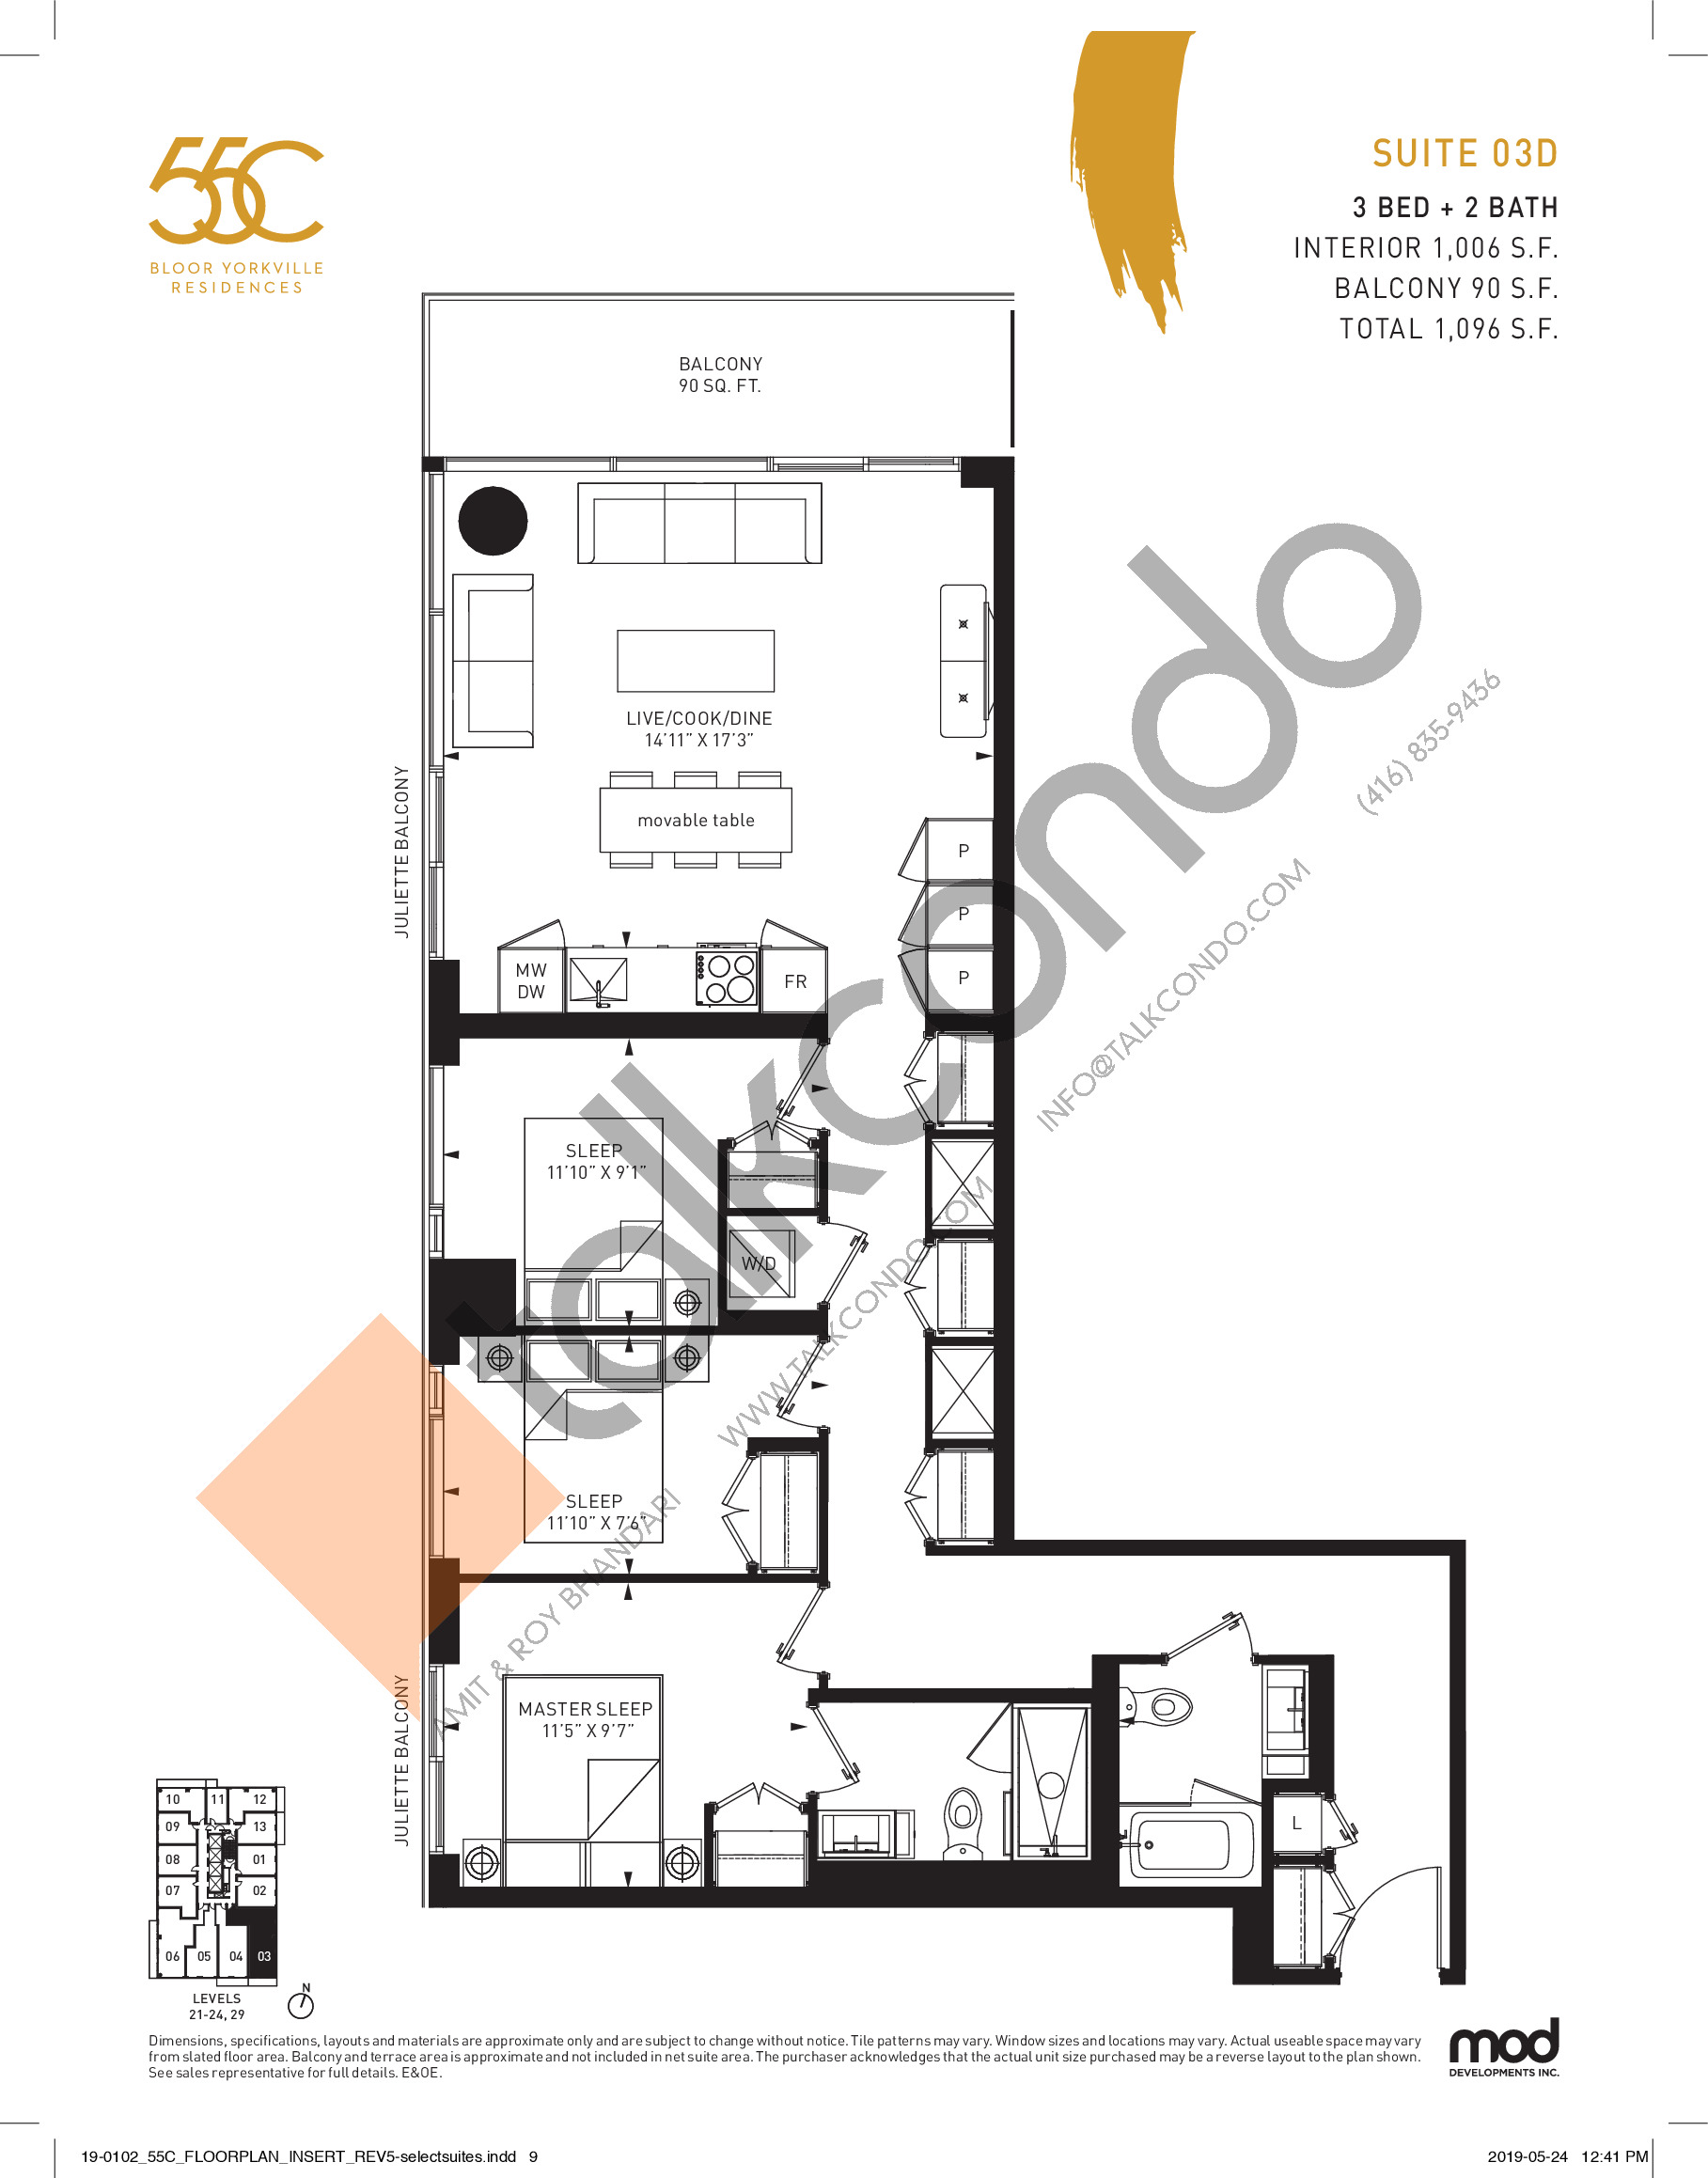 Suite 03D Floor Plan at 55C Condos - 1006 sq.ft